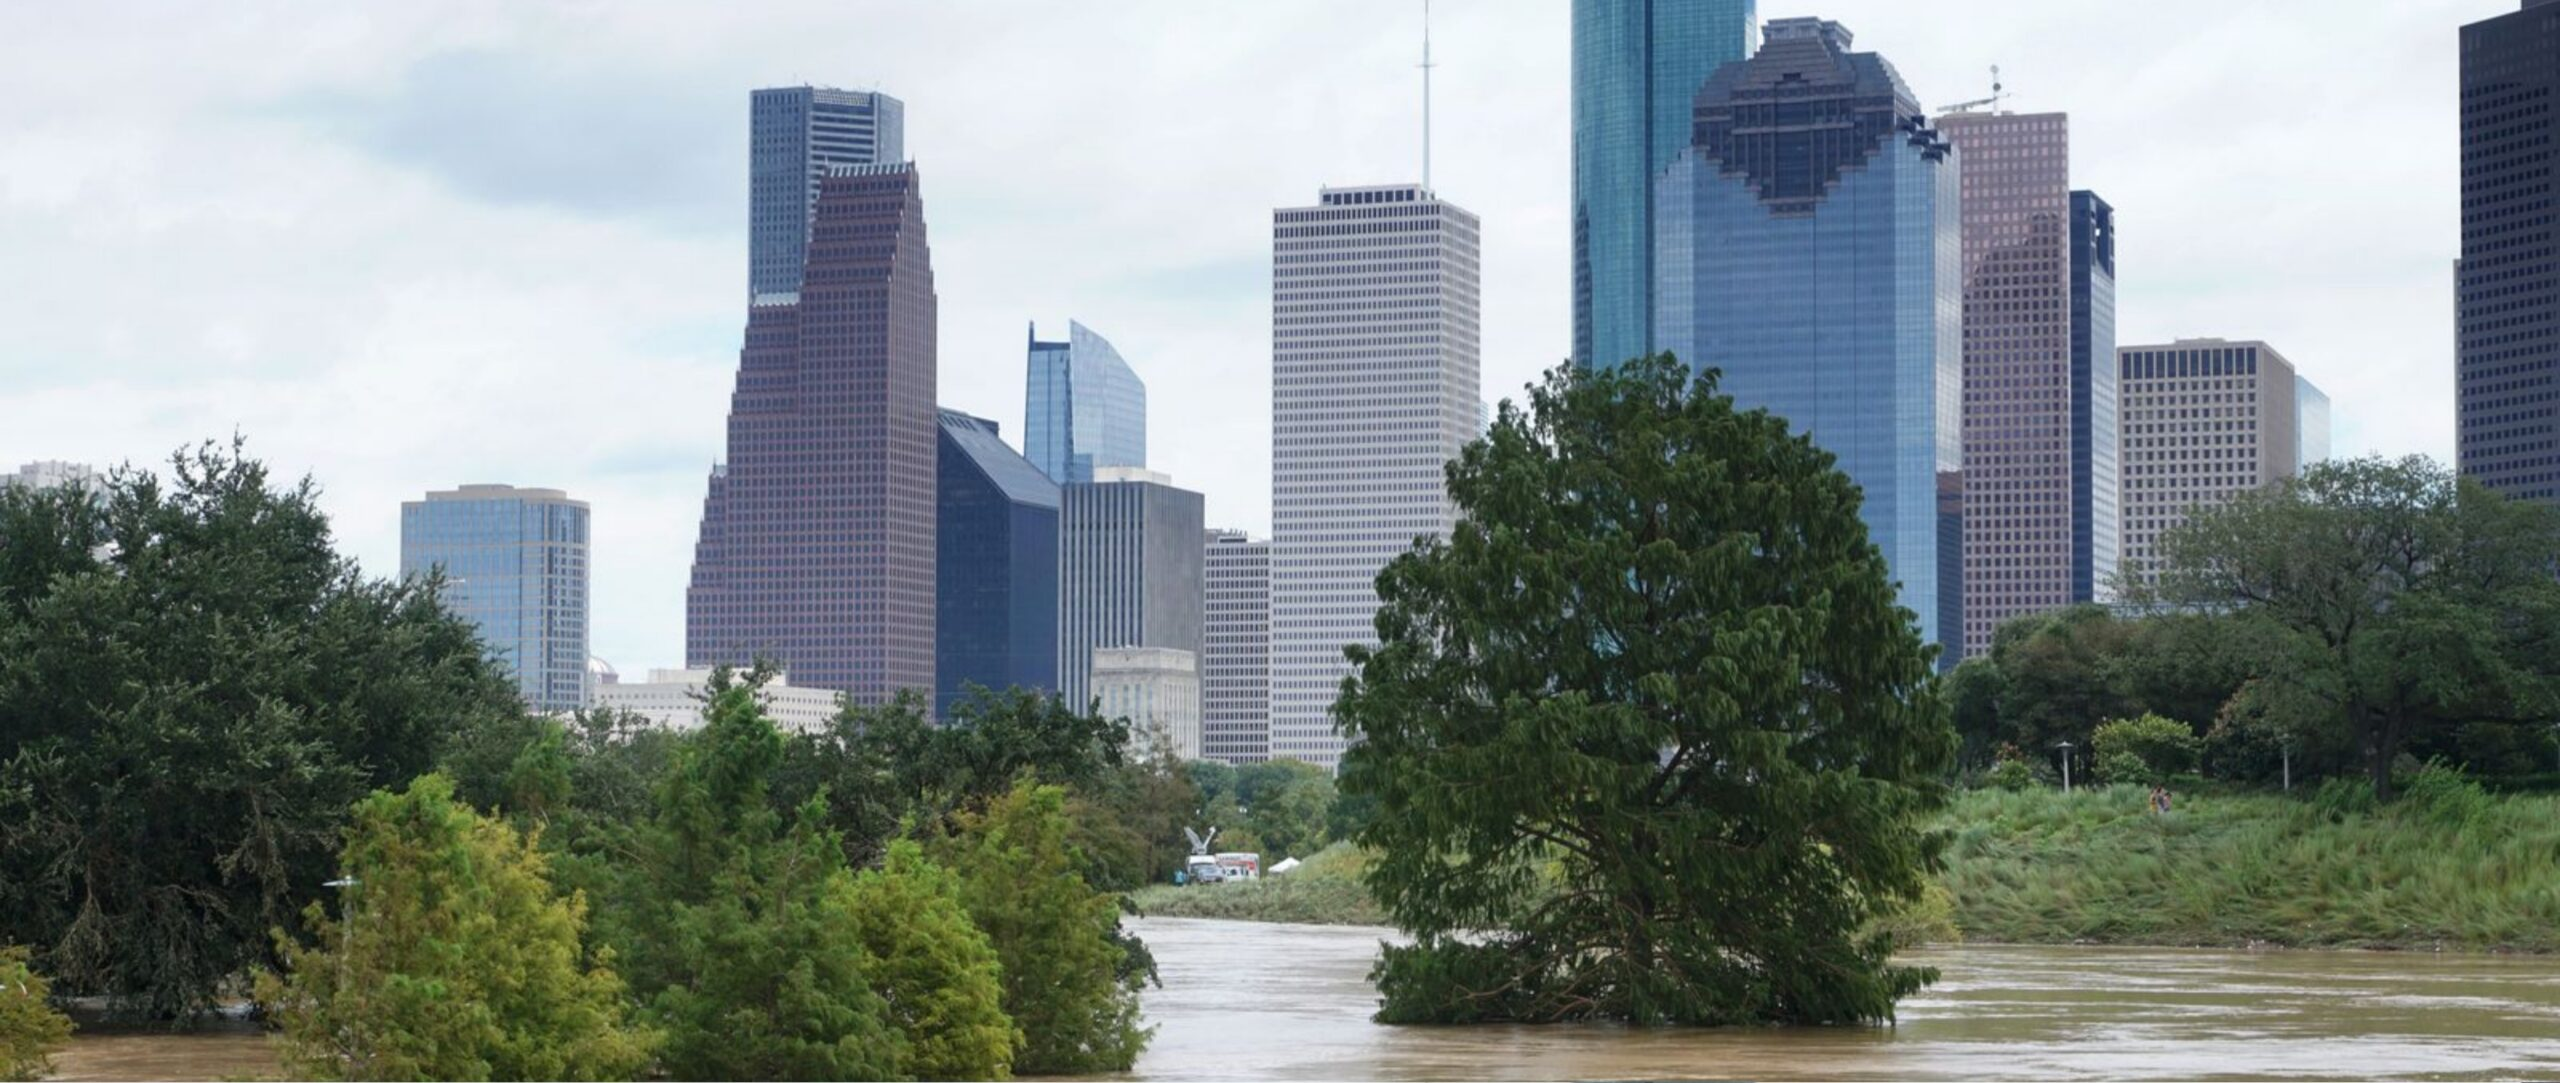 Flooded park in Houston from Hurricane Harvey with city skyline